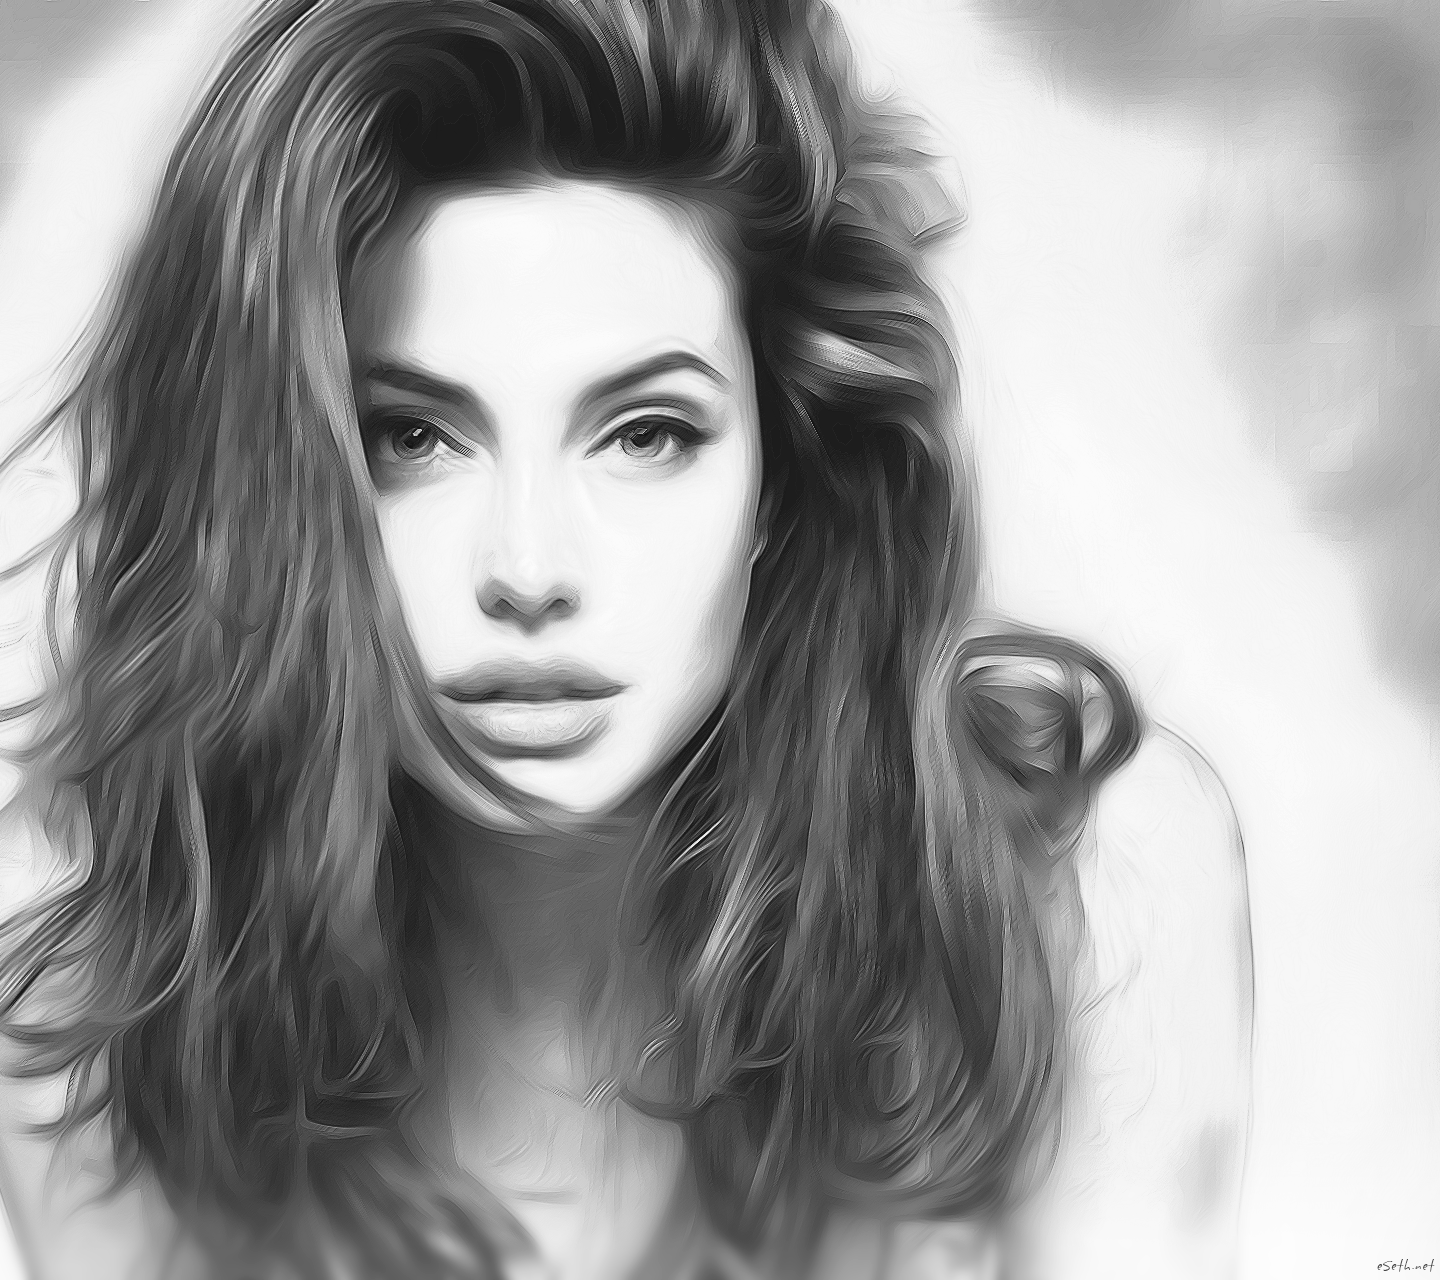 Angelina Jolie Sketch By Gseth On Deviantart